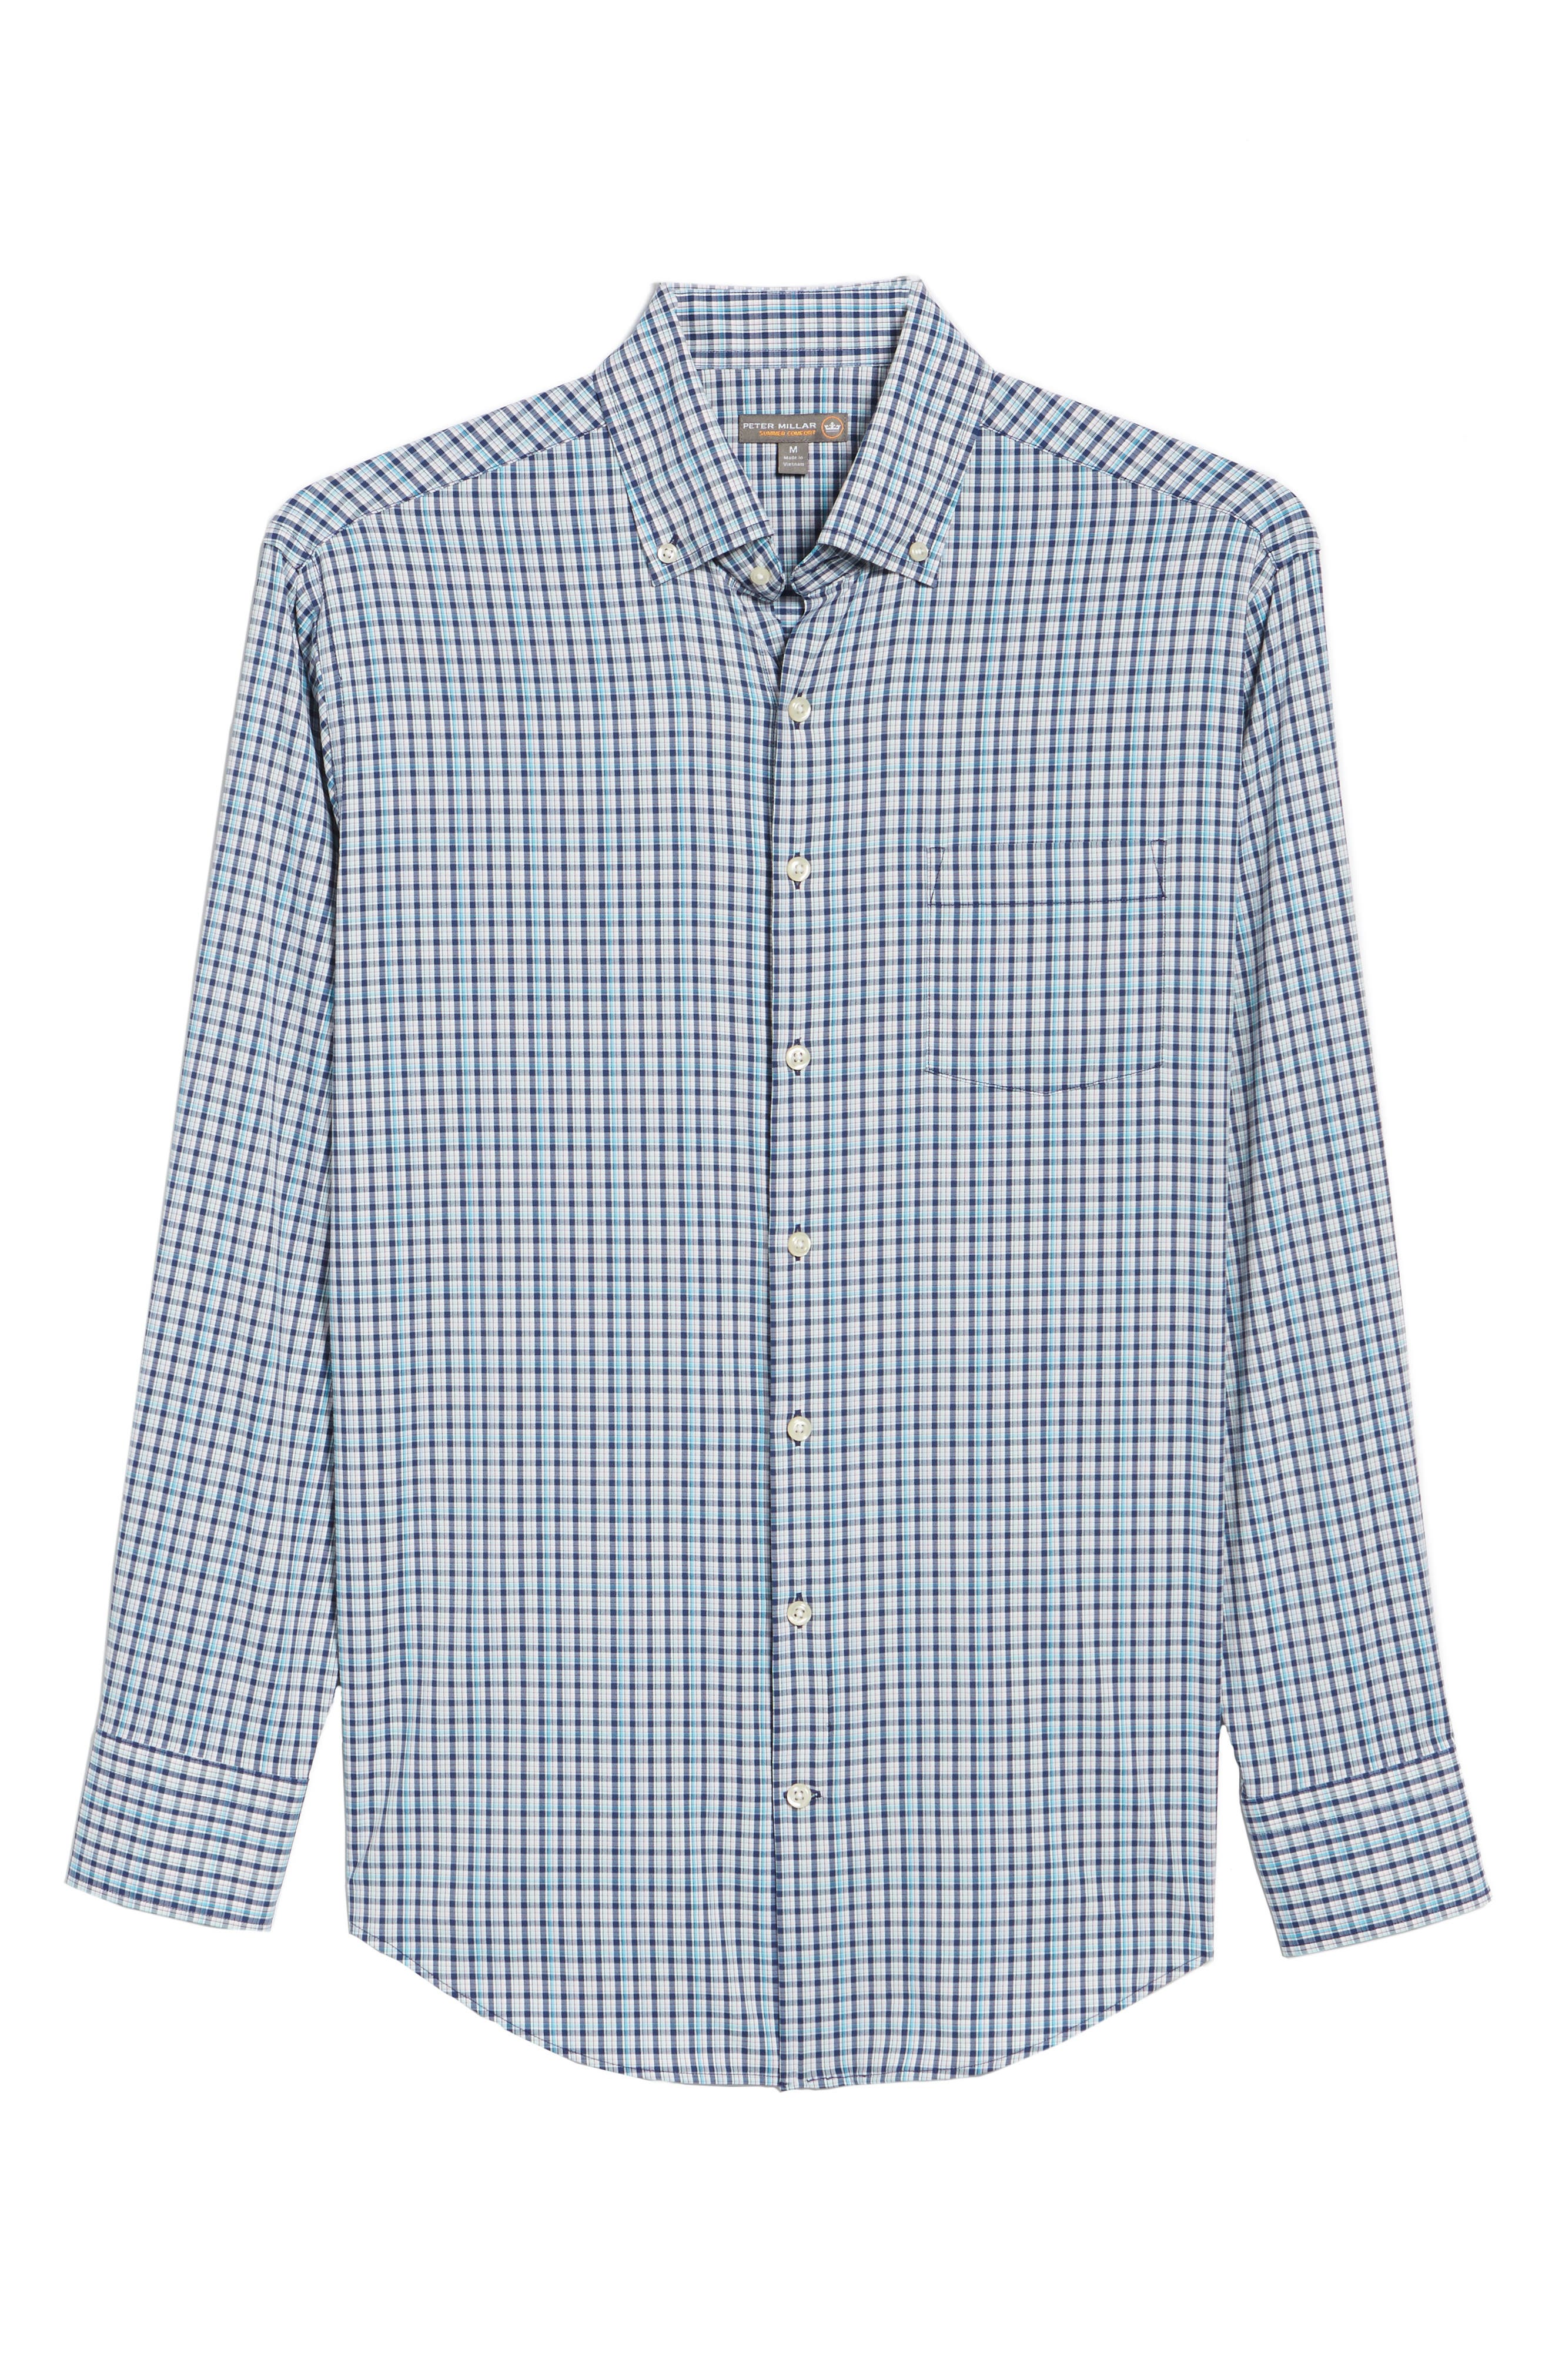 Jojo Check Performance Sport Shirt,                             Alternate thumbnail 6, color,                             Yankee Blue